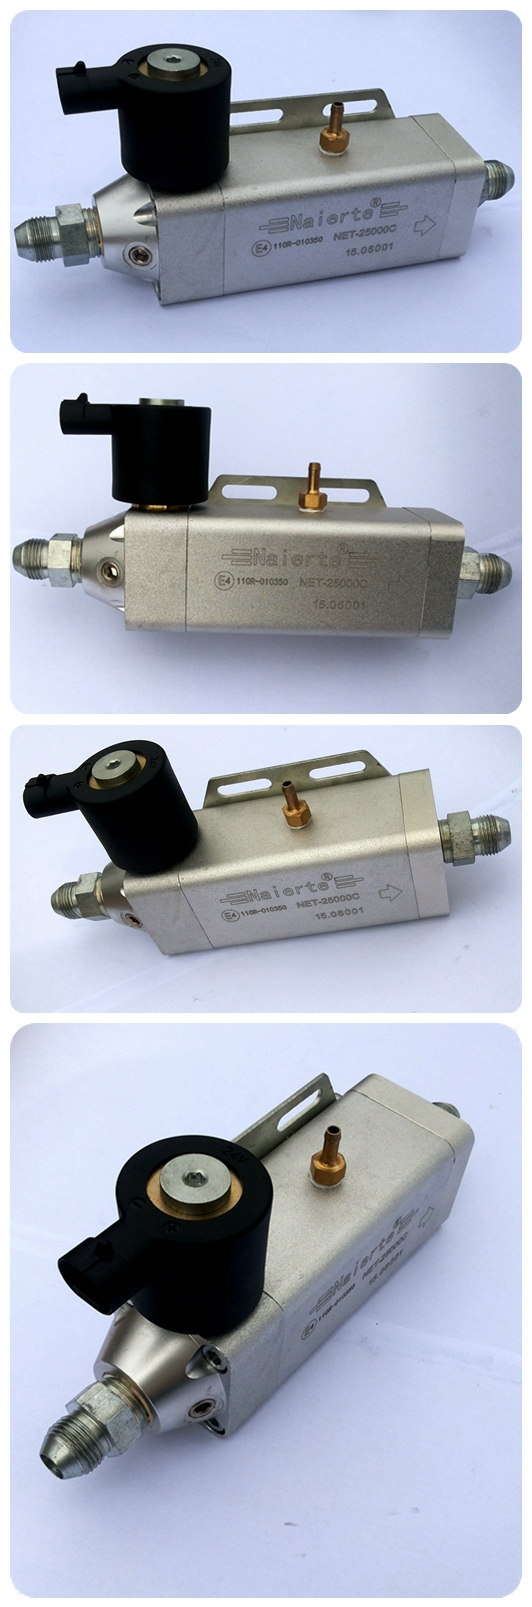 Fuel gas pressure regulator used for diesel to CNG/LNG conversion